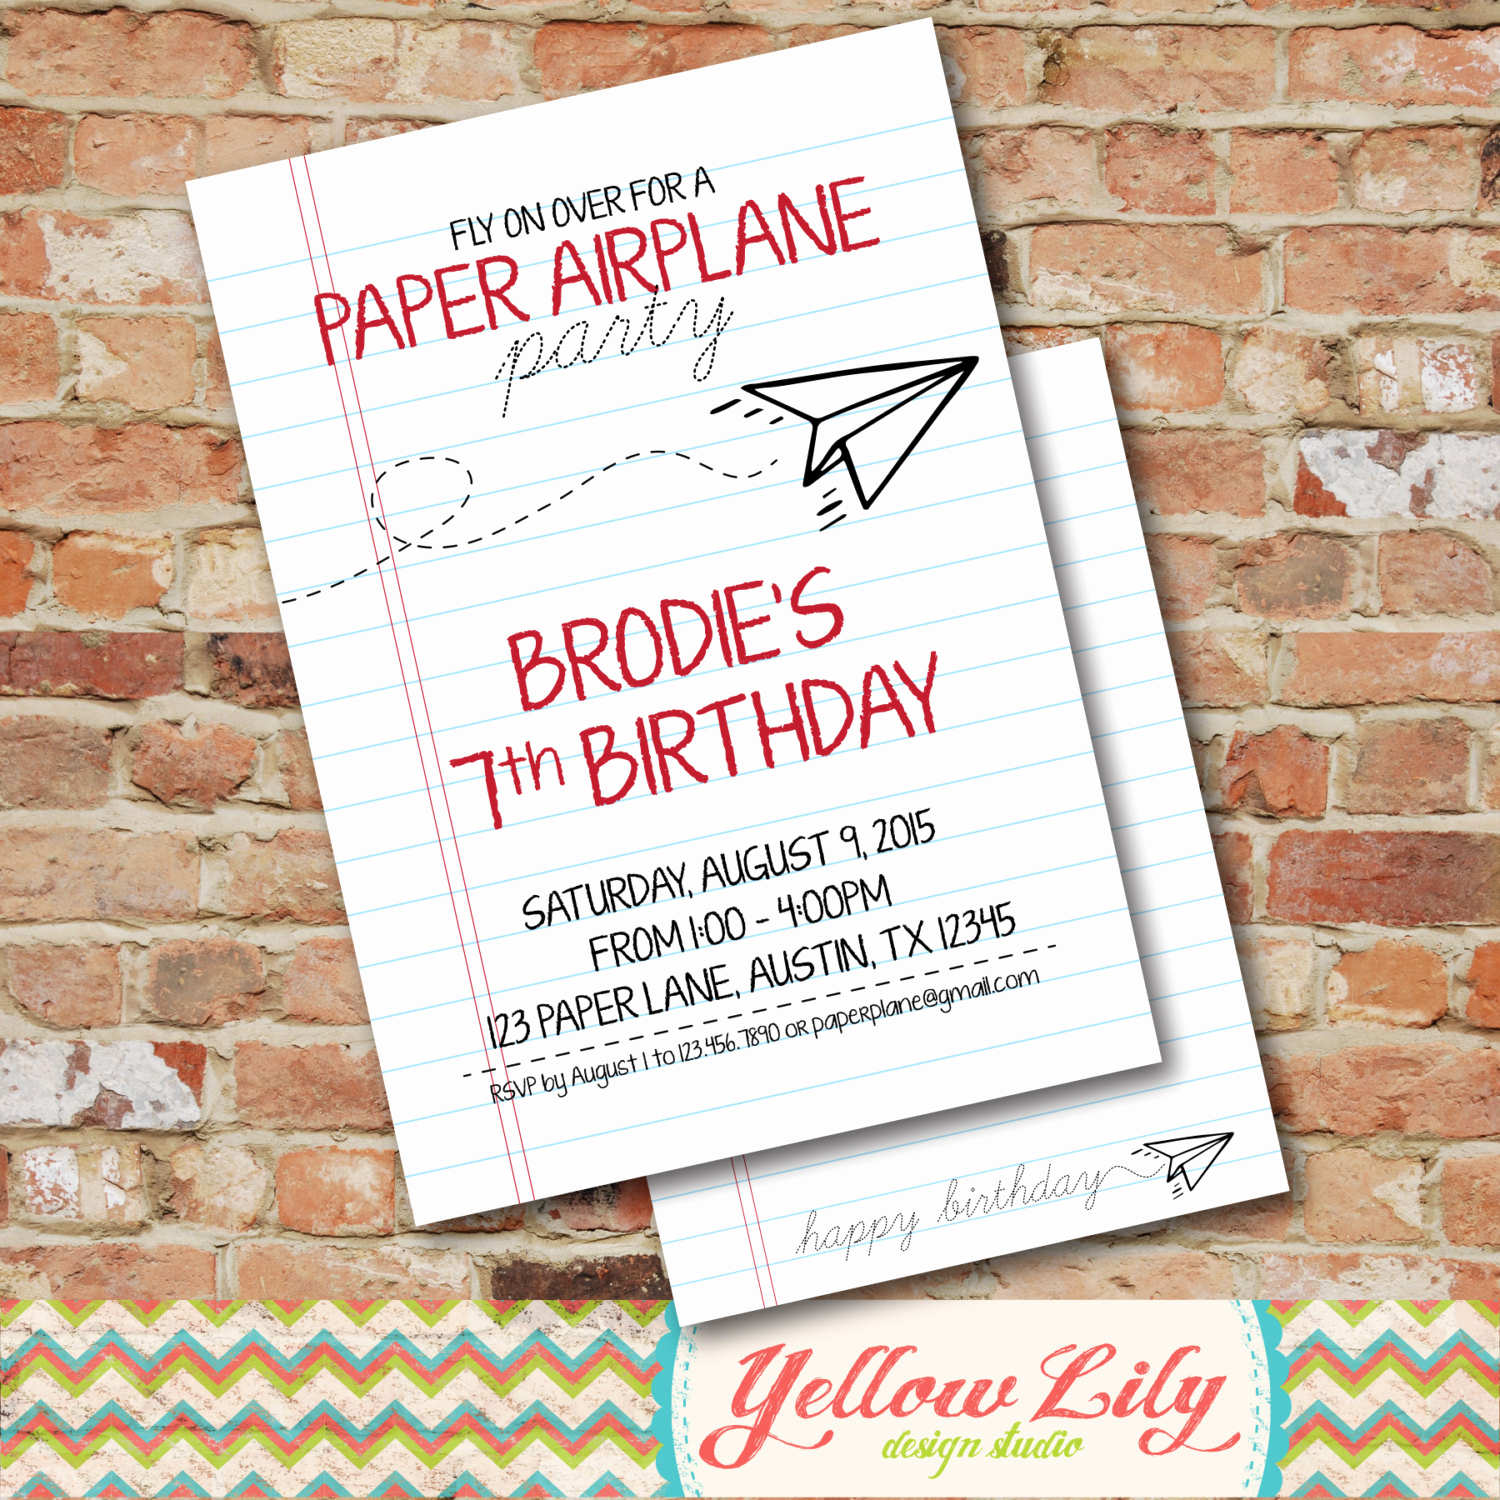 Paper Airplane Invitation Template Inspirational Paper Airplane Party Invitation Diy Party Printable